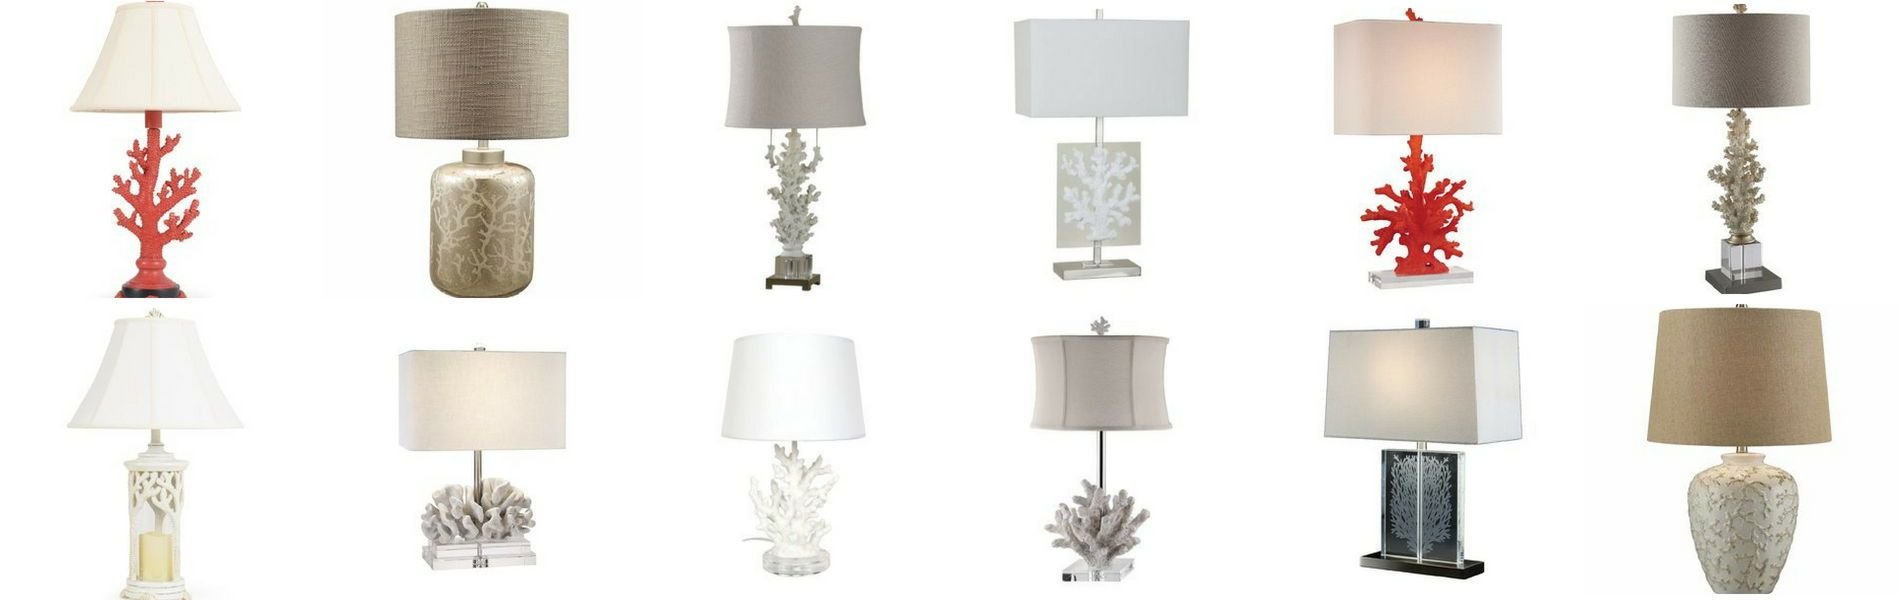 Coral Lamps Discover The Best Coral Themed Table Lamps And Floor